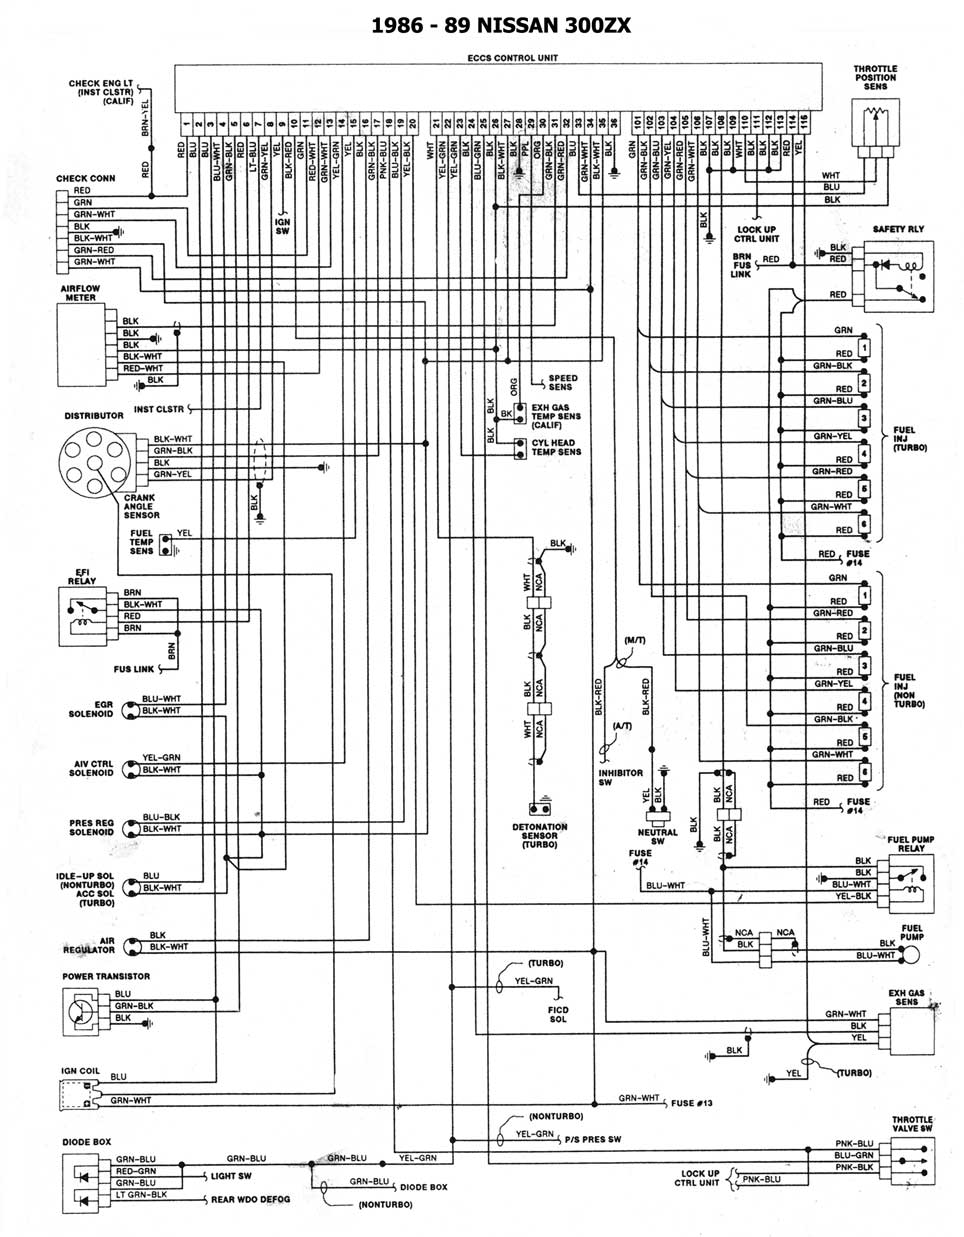 medium resolution of 89 nissan 300zx wiring diagram wiring diagram89 nissan 300zx diagram 0 awwajwii newtrading info